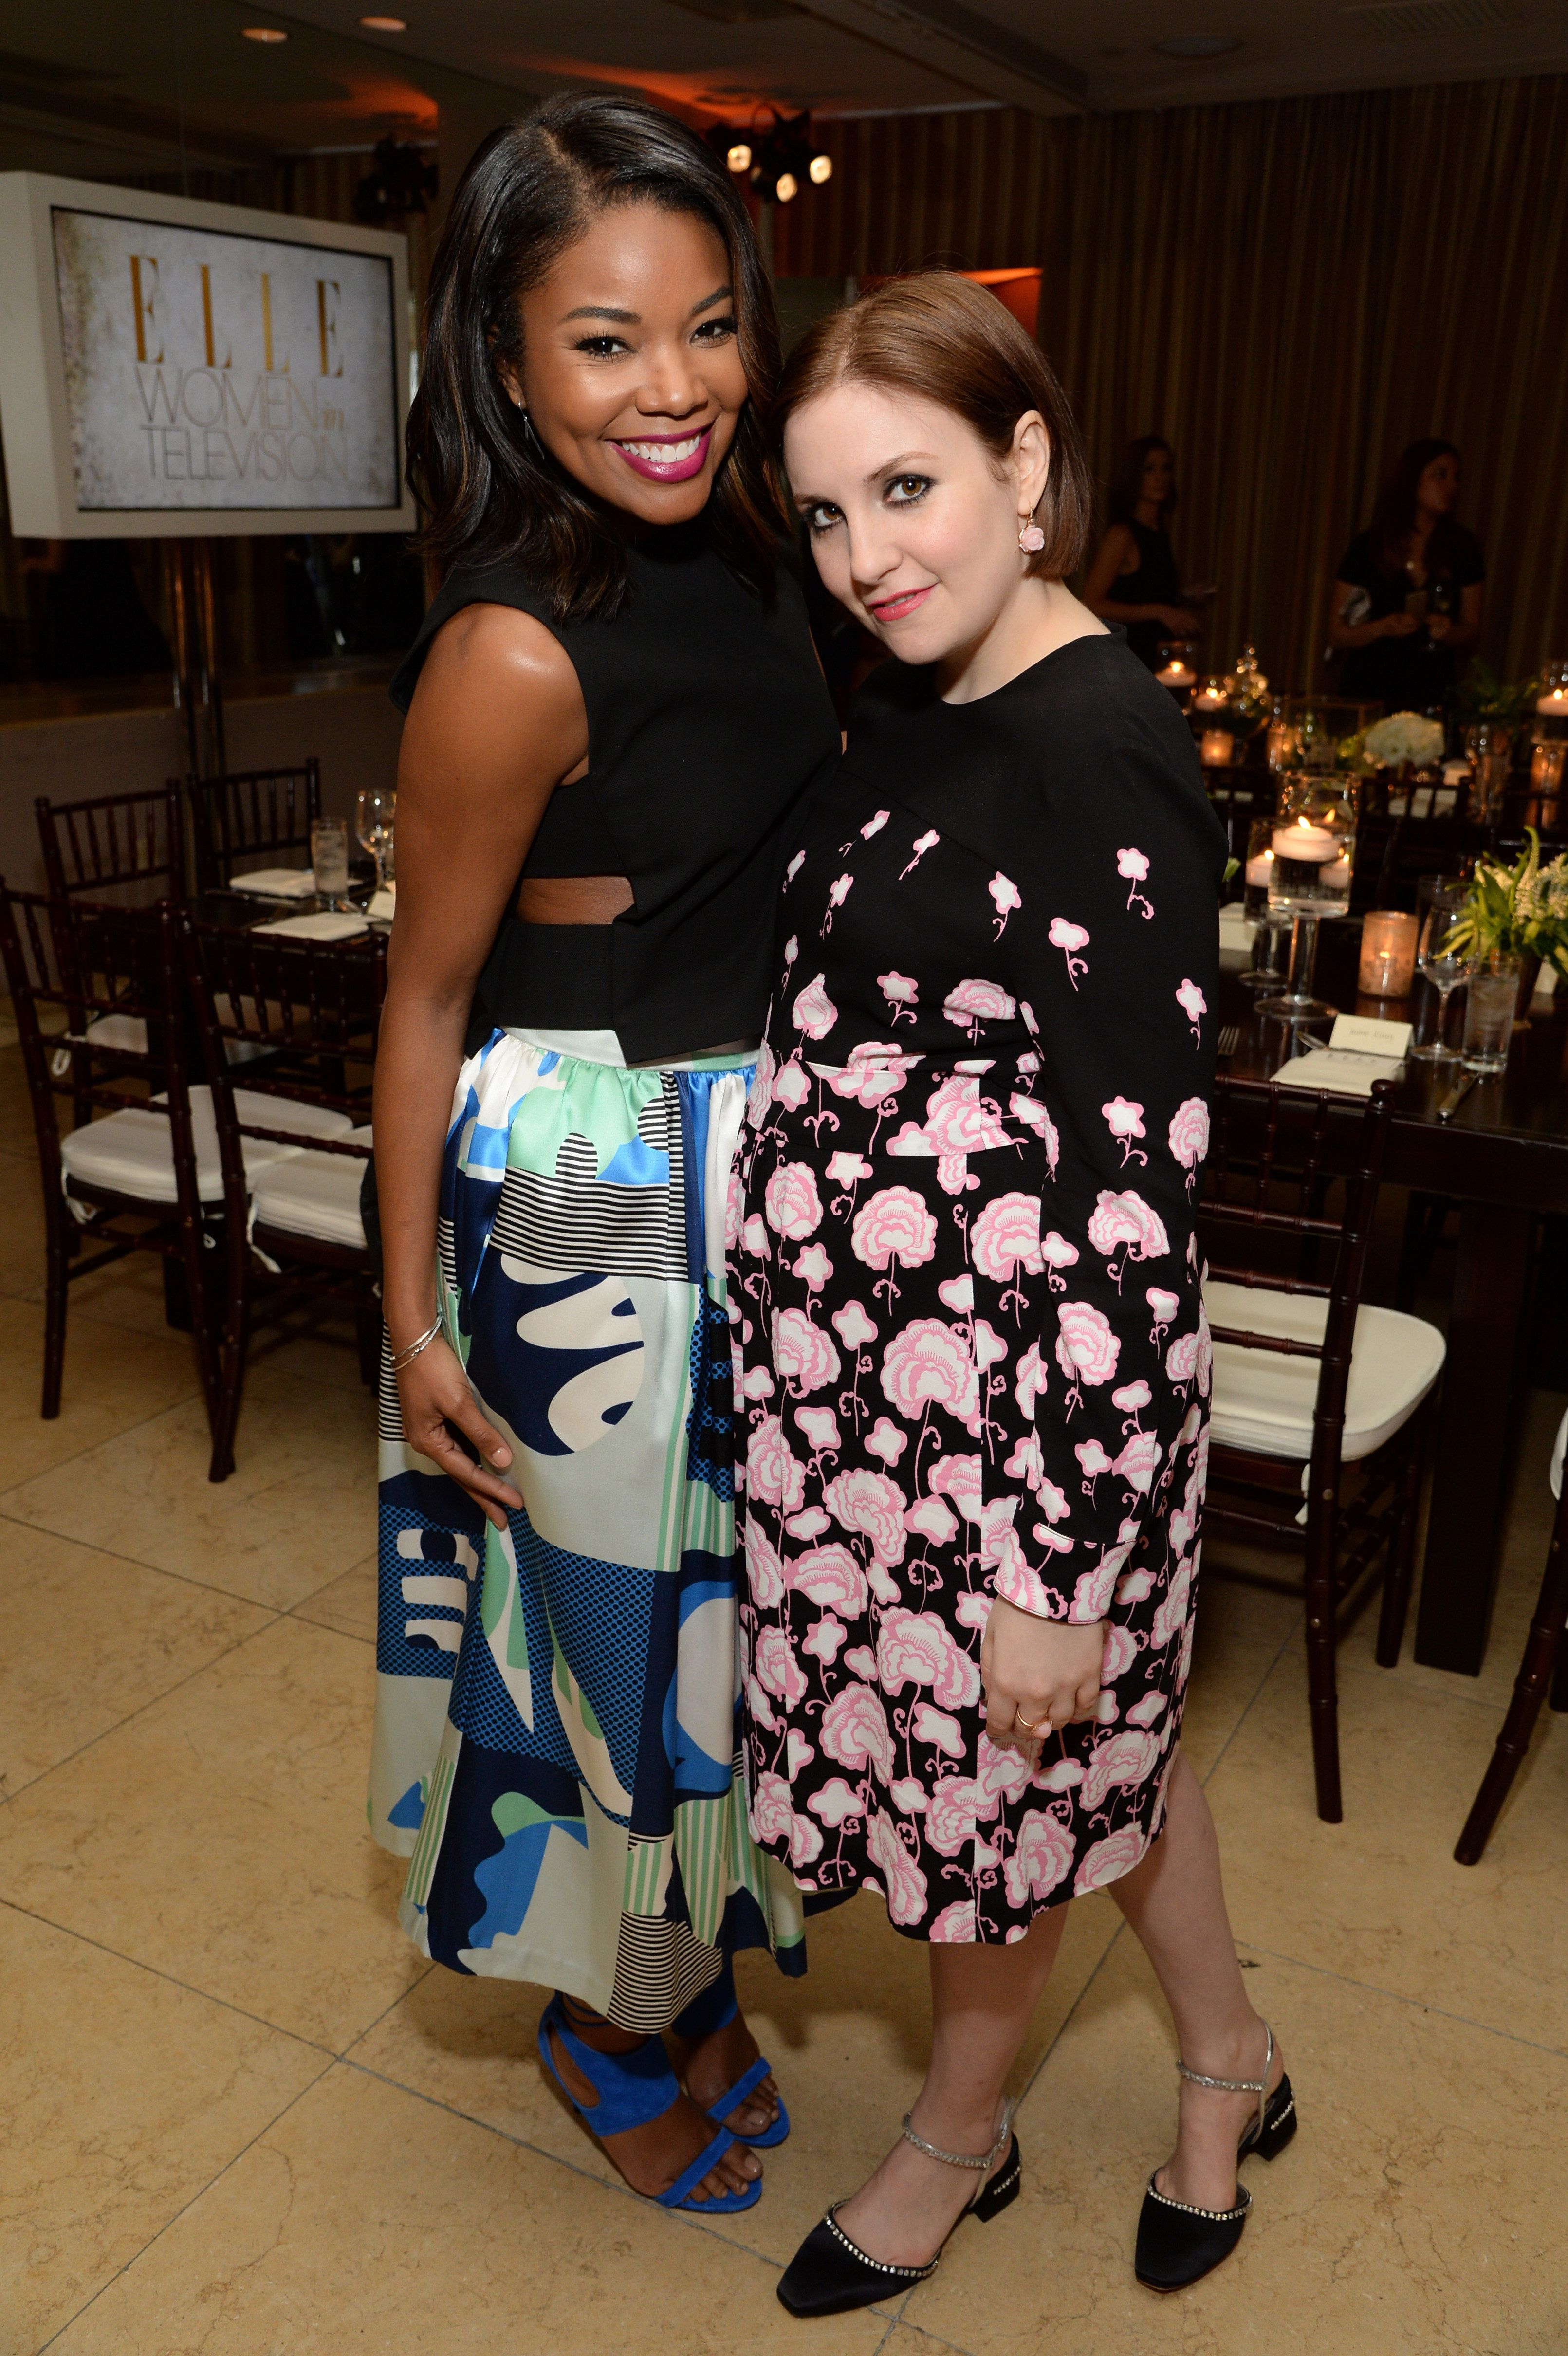 WEST HOLLYWOOD, CA - JANUARY 13:  Actresses  Gabrielle Union (L) and Lena Dunham attend ELLE's Annual Women in Television Celebration on January 13, 2015 at Sunset Tower in West Hollywood, California. Presented by Hearts on Fire and Olay.  (Photo by Michael Kovac/Getty Images for Elle/Hearts On Fire)